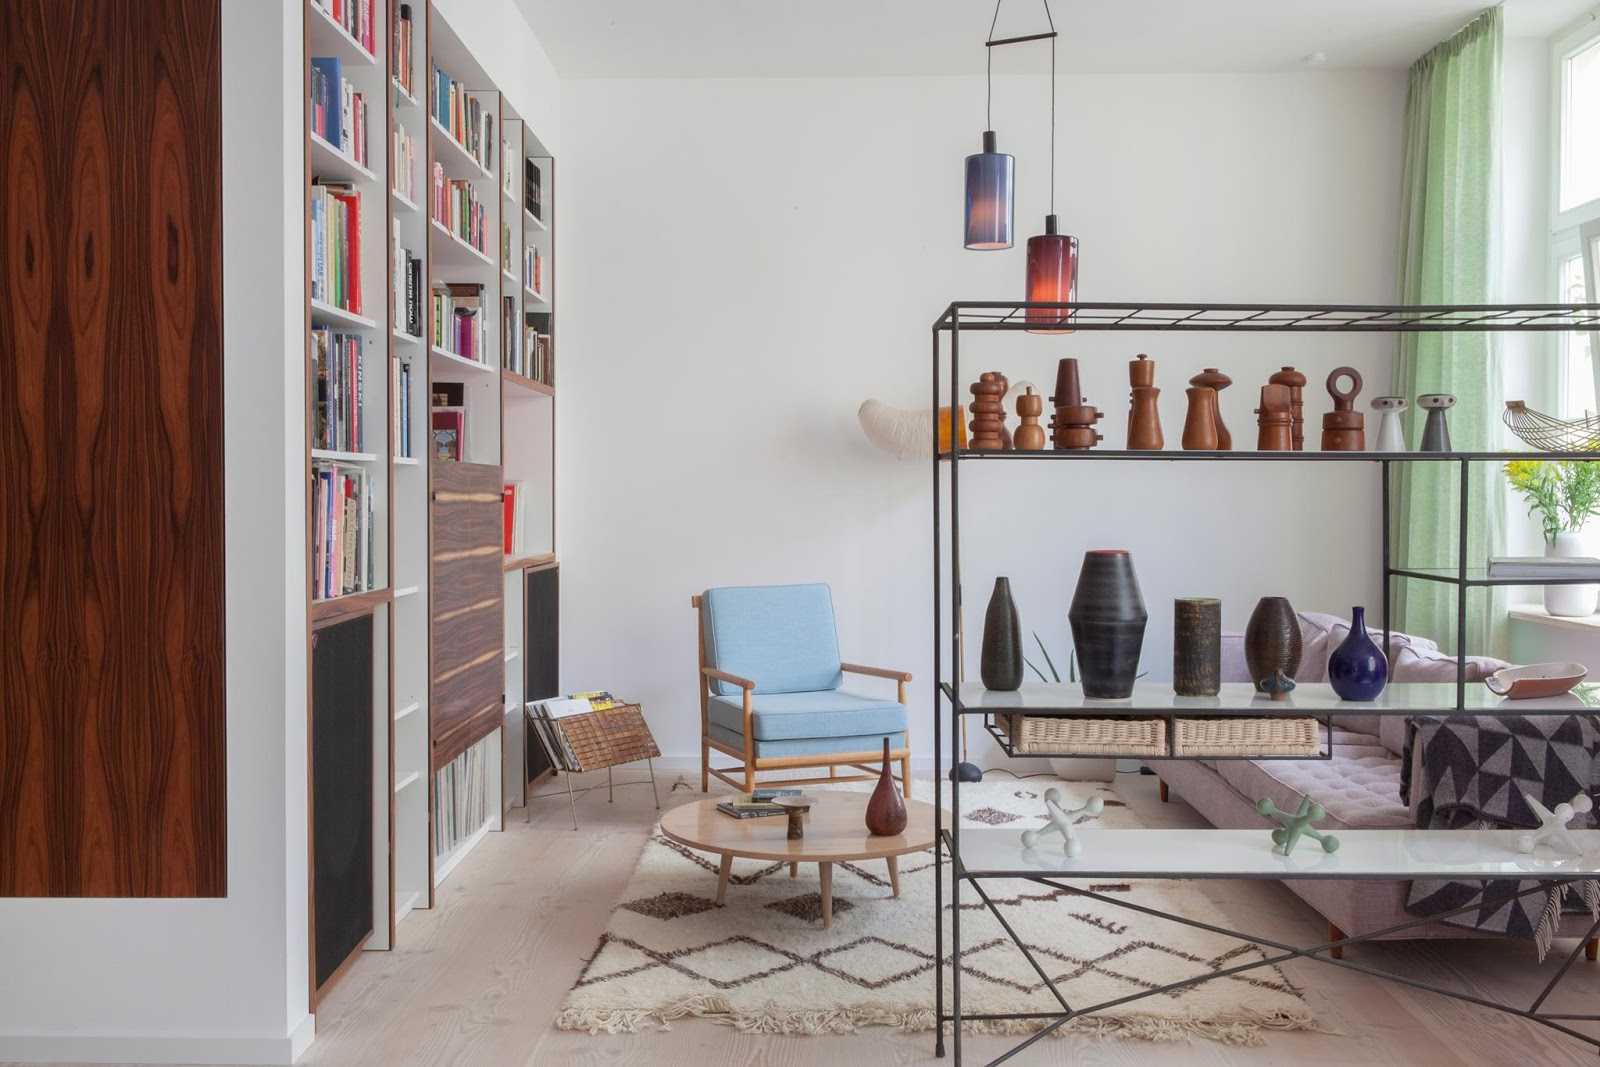 amazing designer loft in berlin with mdi century modern design, noguchi lamp, pattern carpet